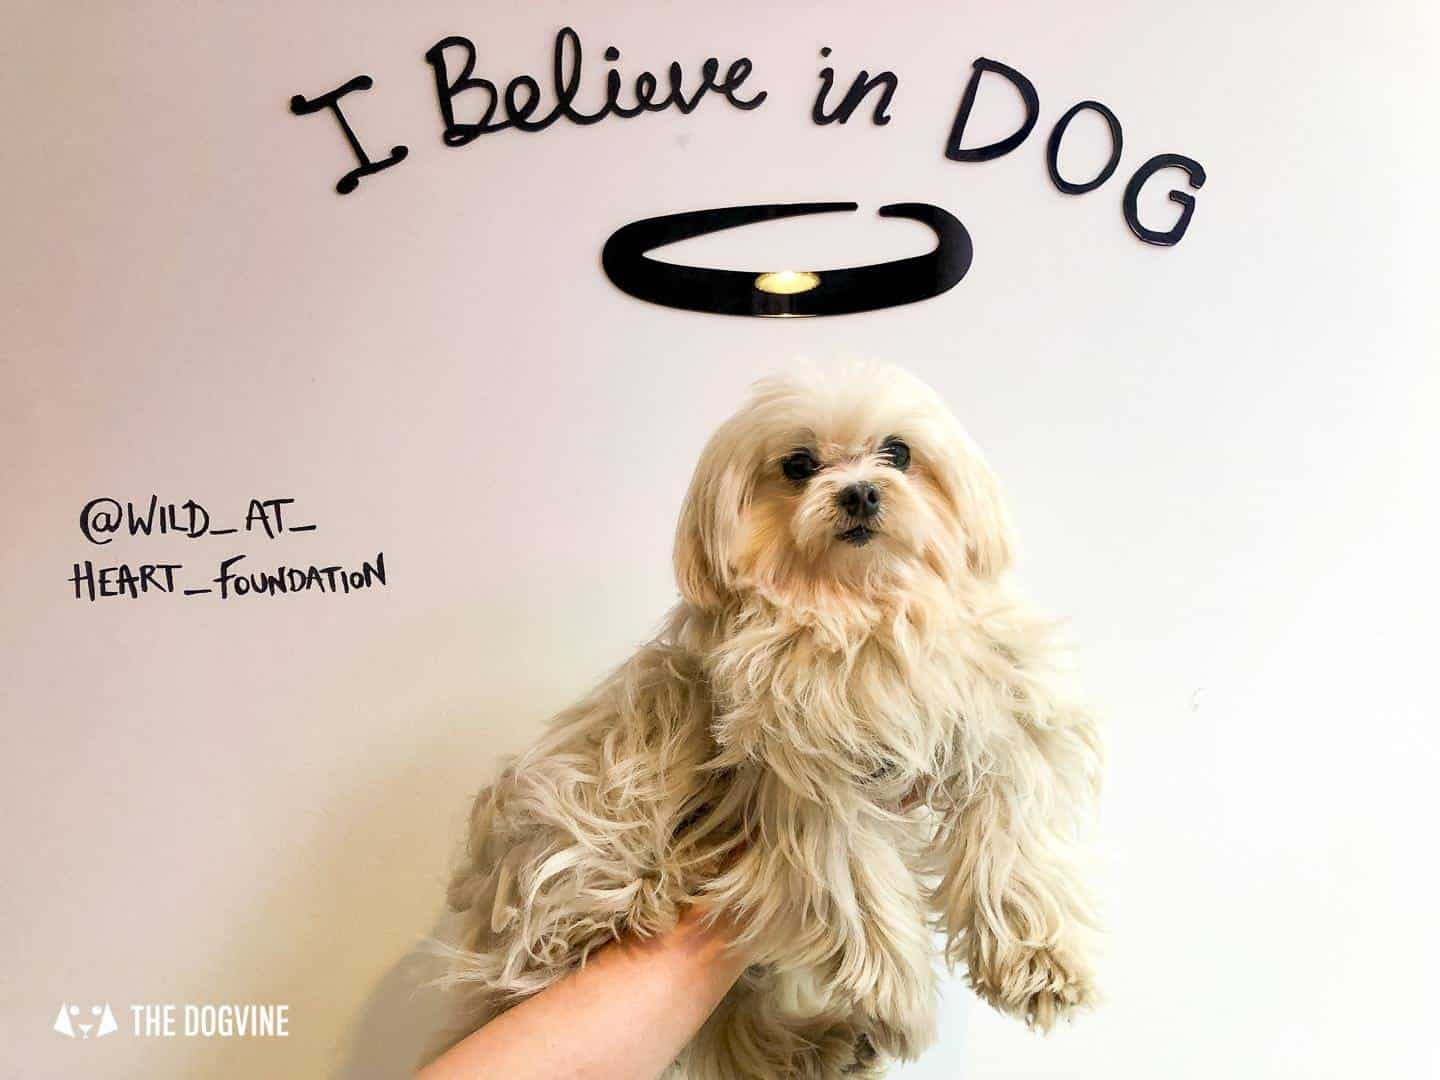 Pup Philanthropy at I Believe In Dog The Pop-up and Lilliput The Maltese